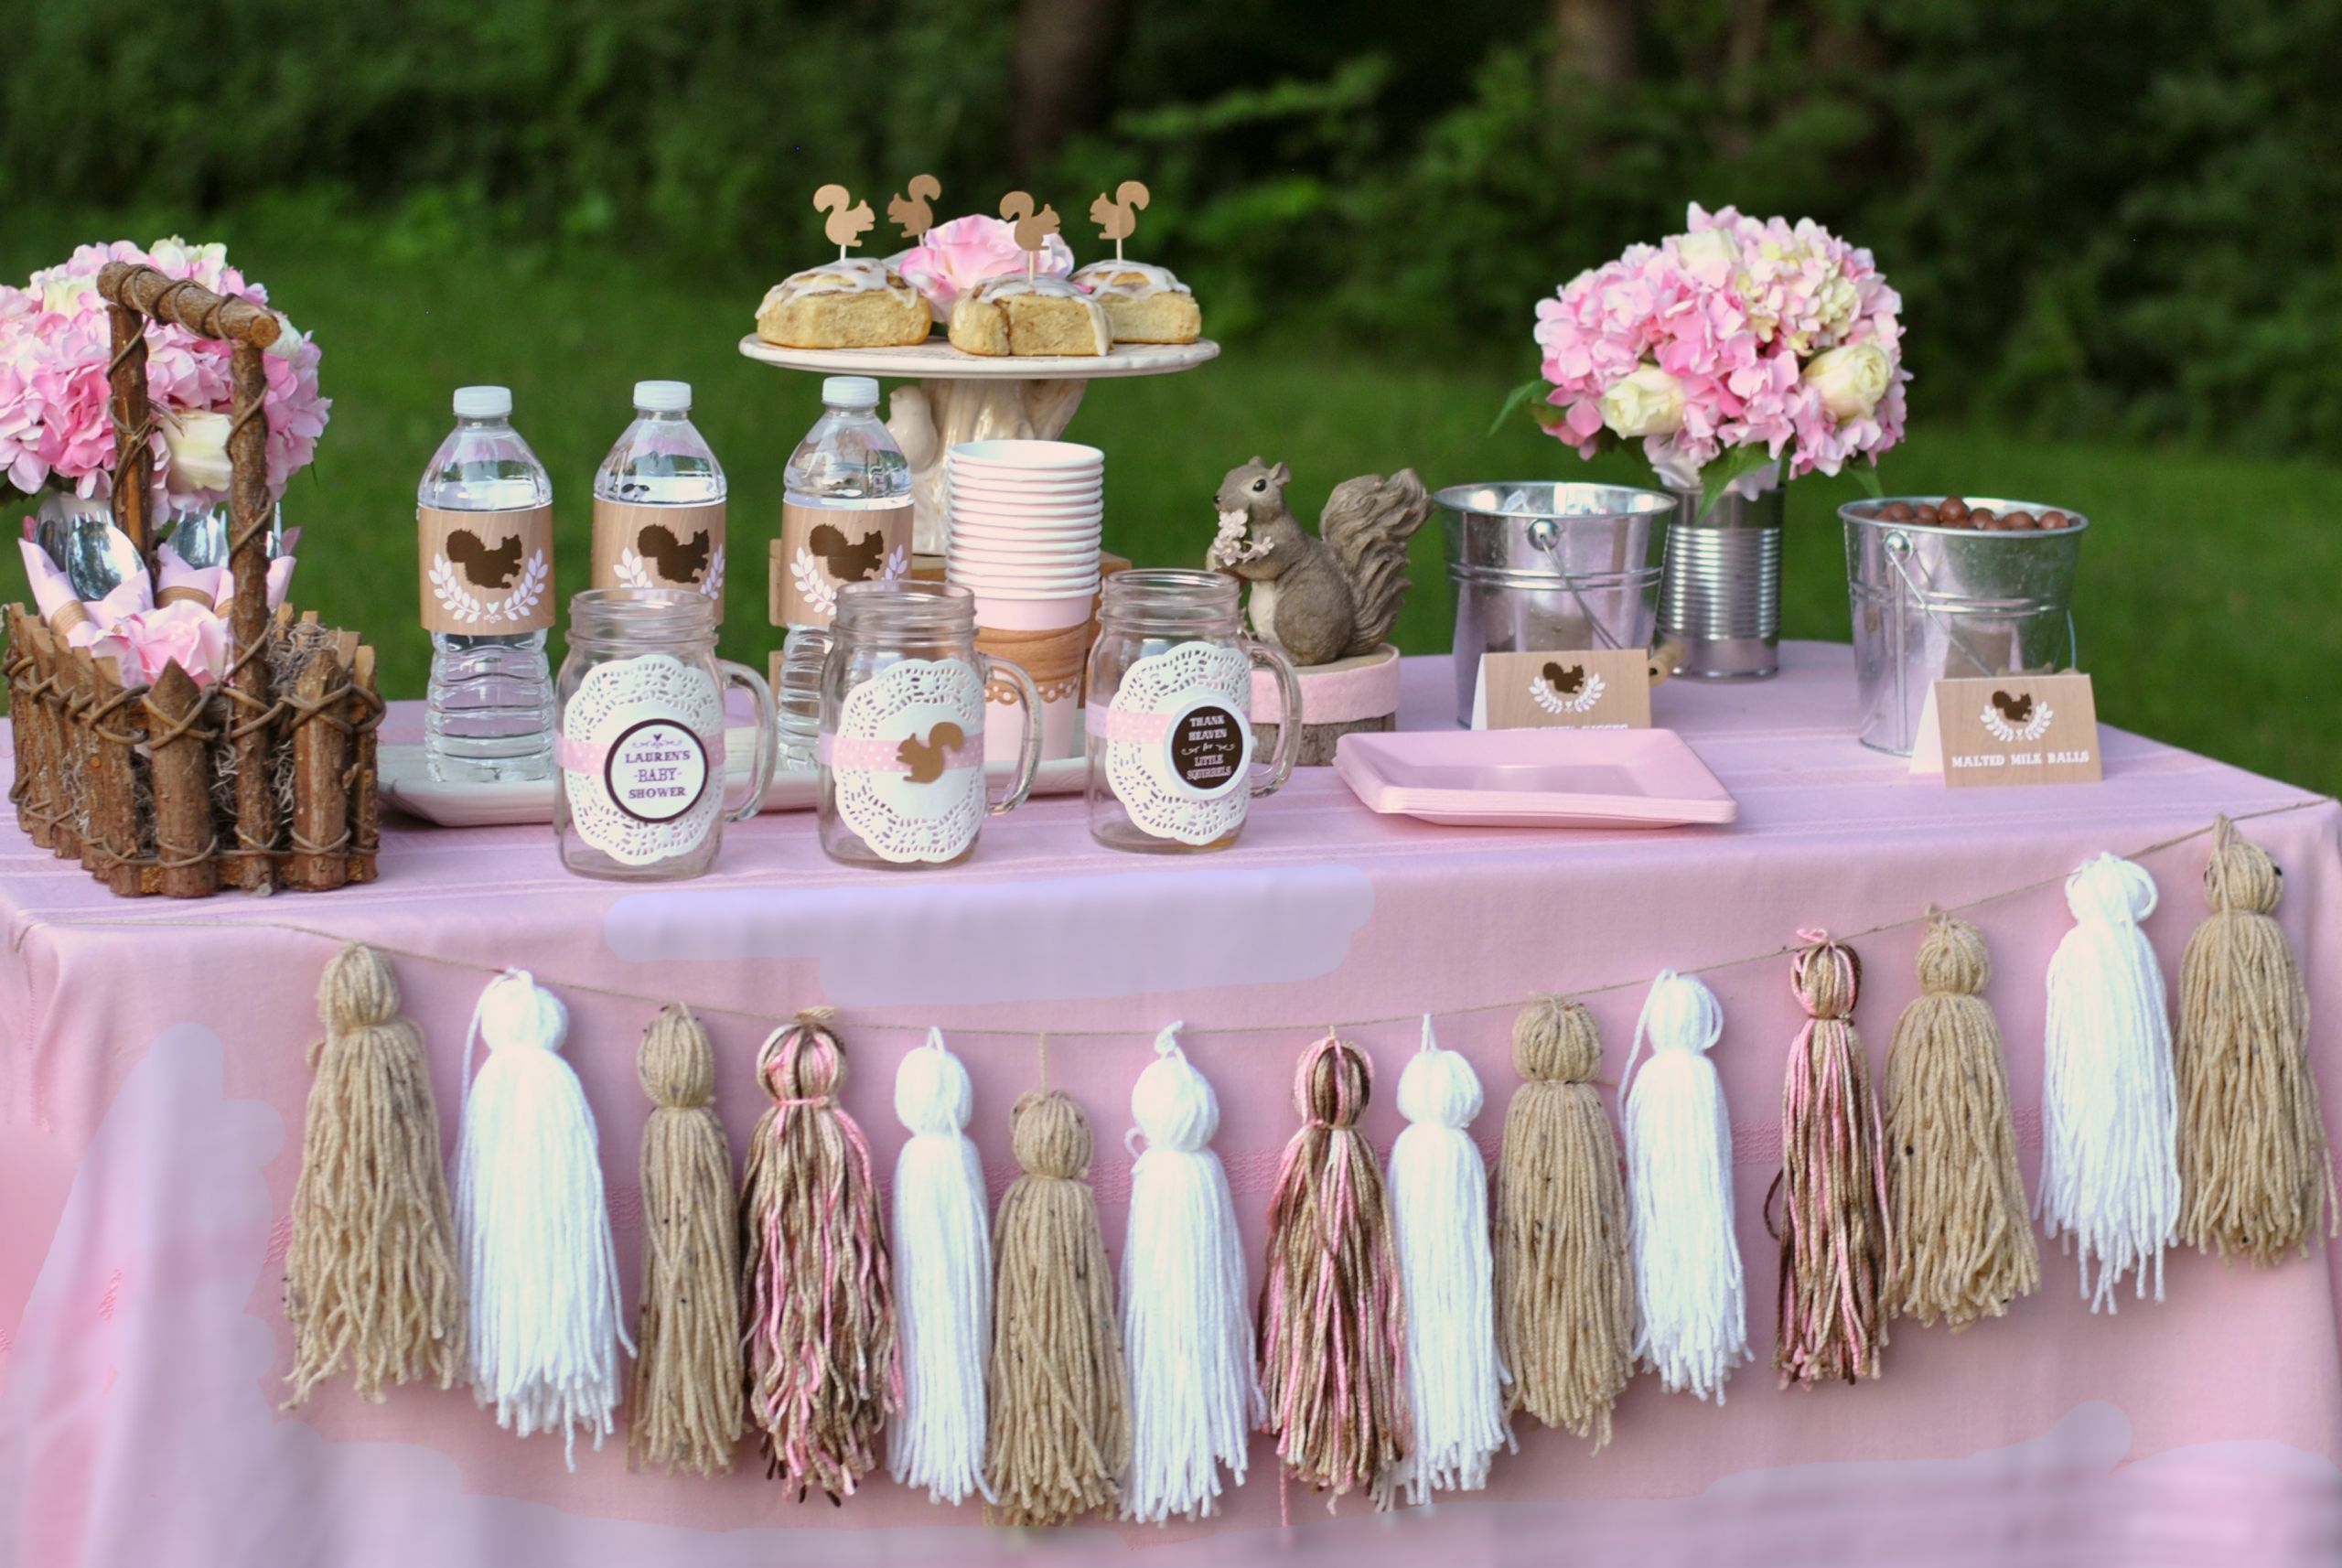 Baby Shower Decoration Ideas For A Girl  Baby Shower Themes for Girls Inspirations They Don t Have